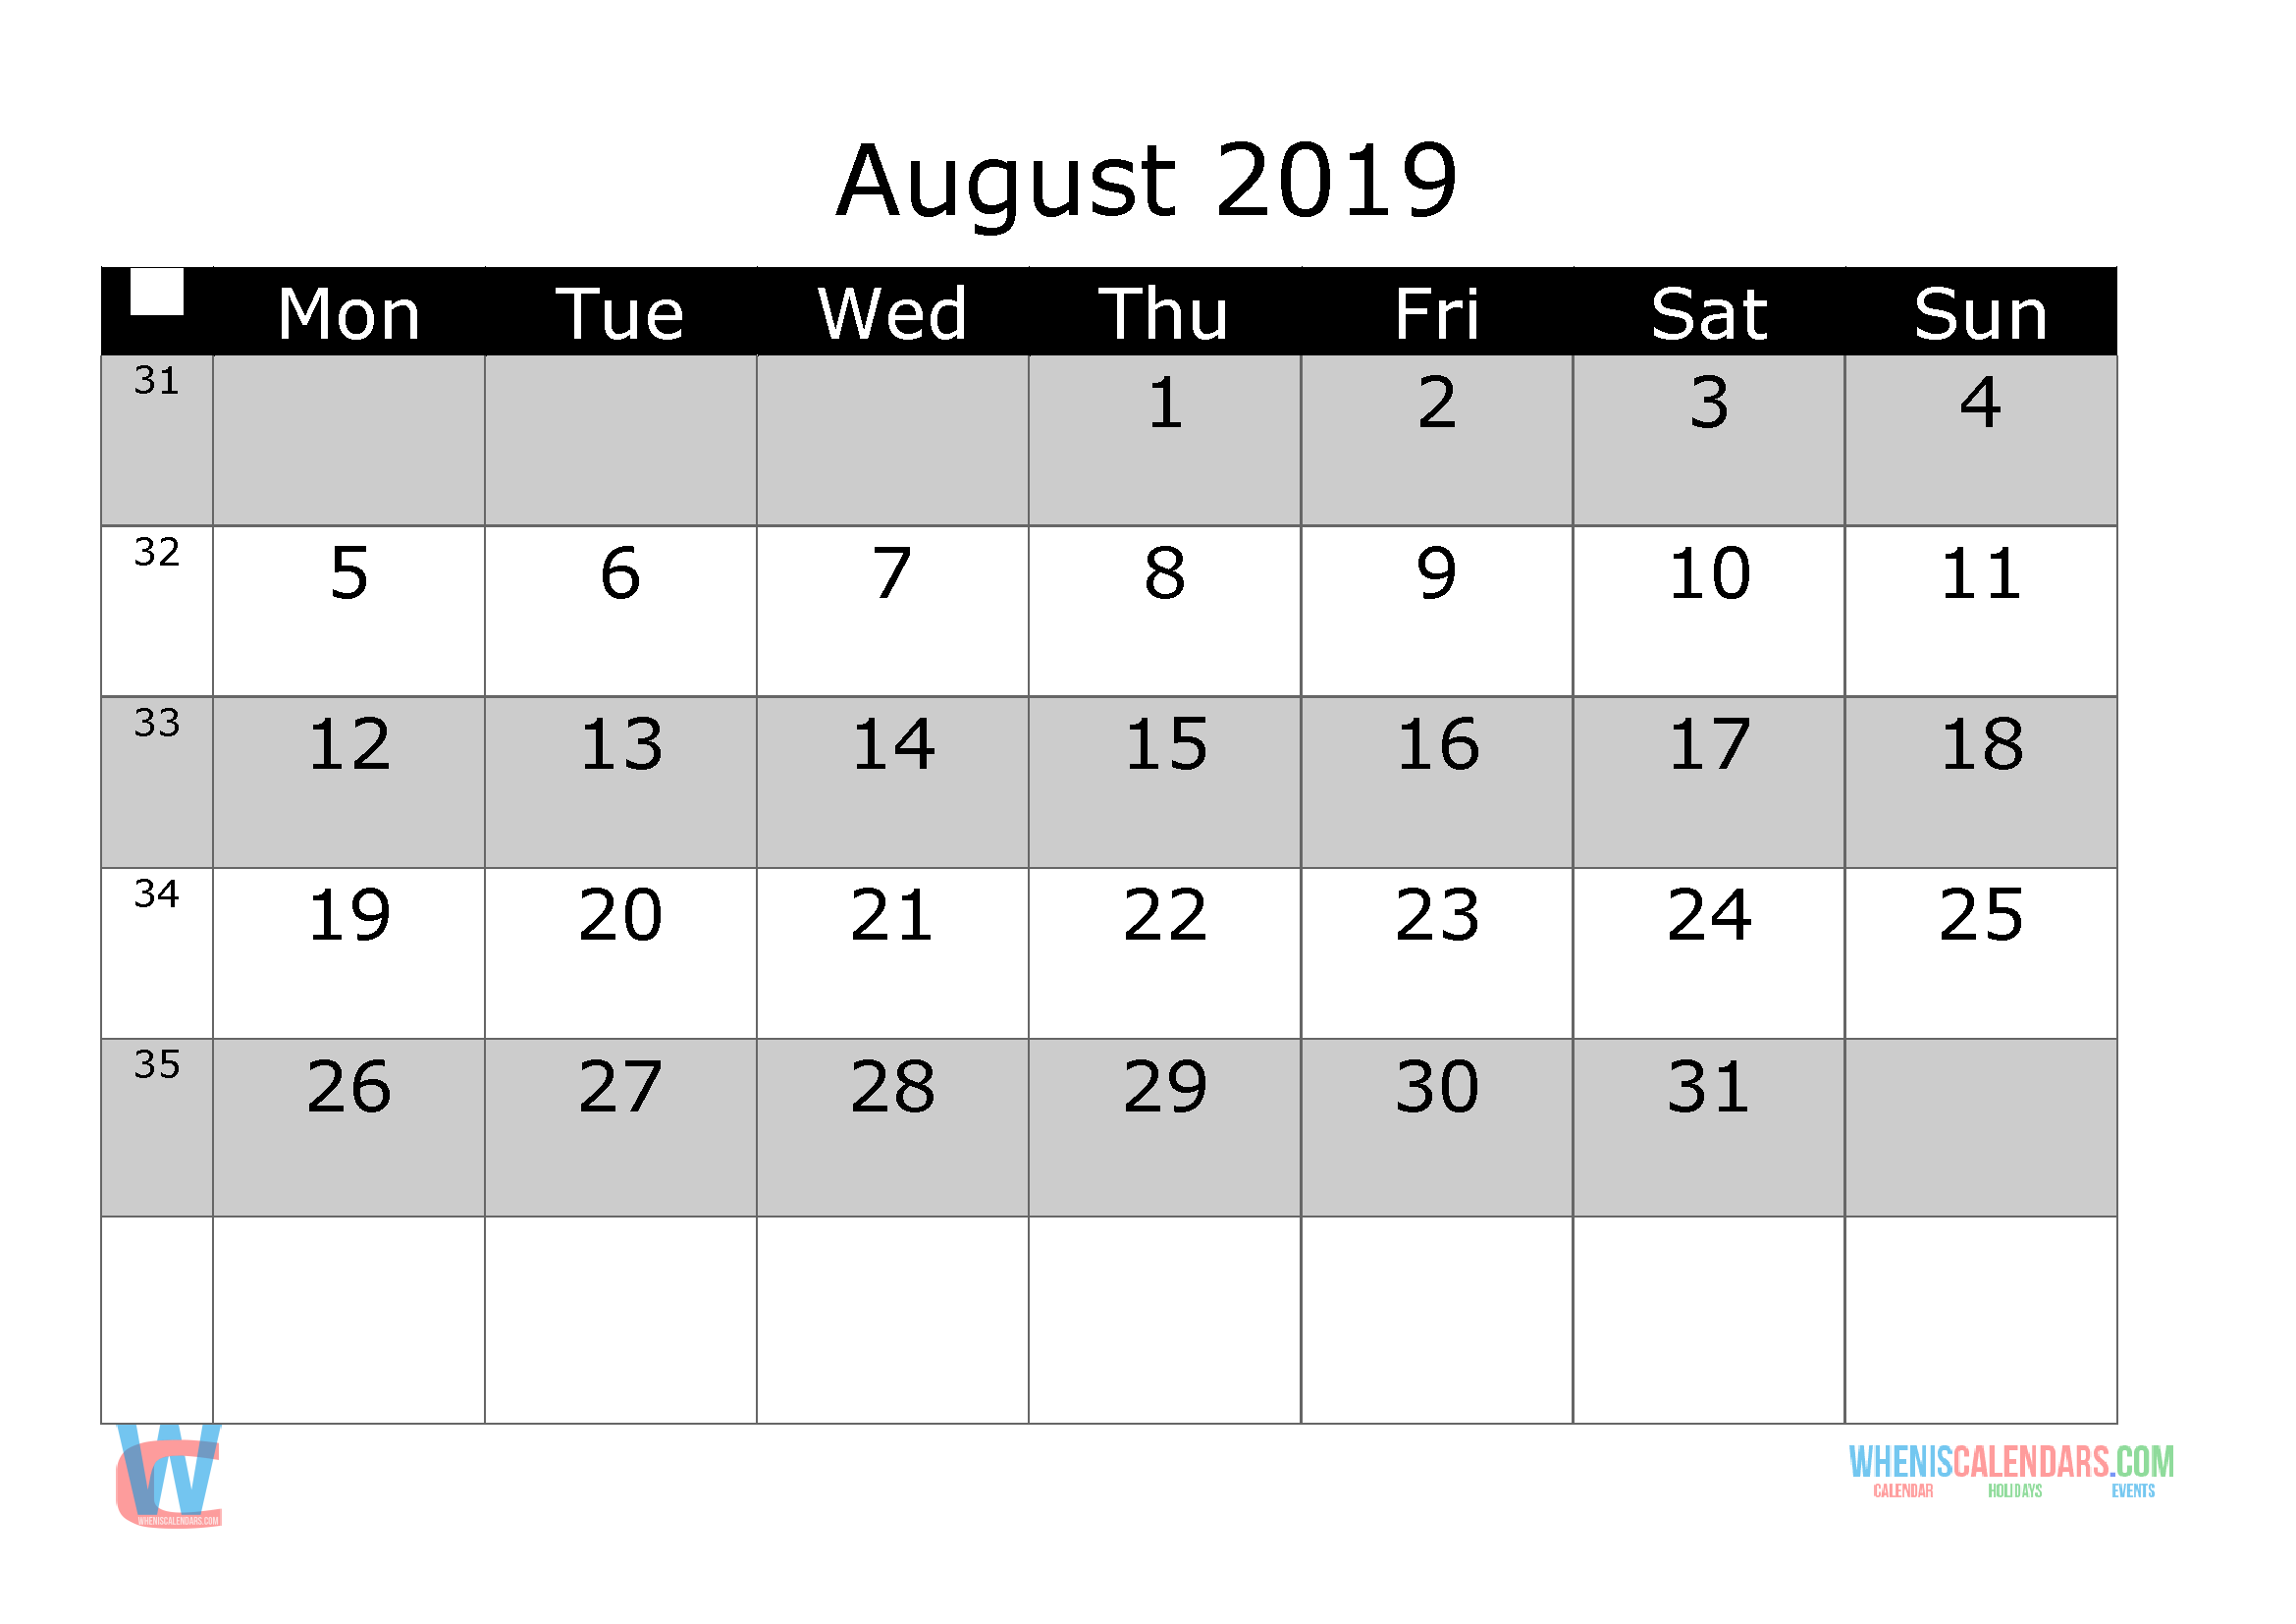 photo about Printable Monthly Calendar August named August 2019 Printable Every month Calendar with 7 days Figures